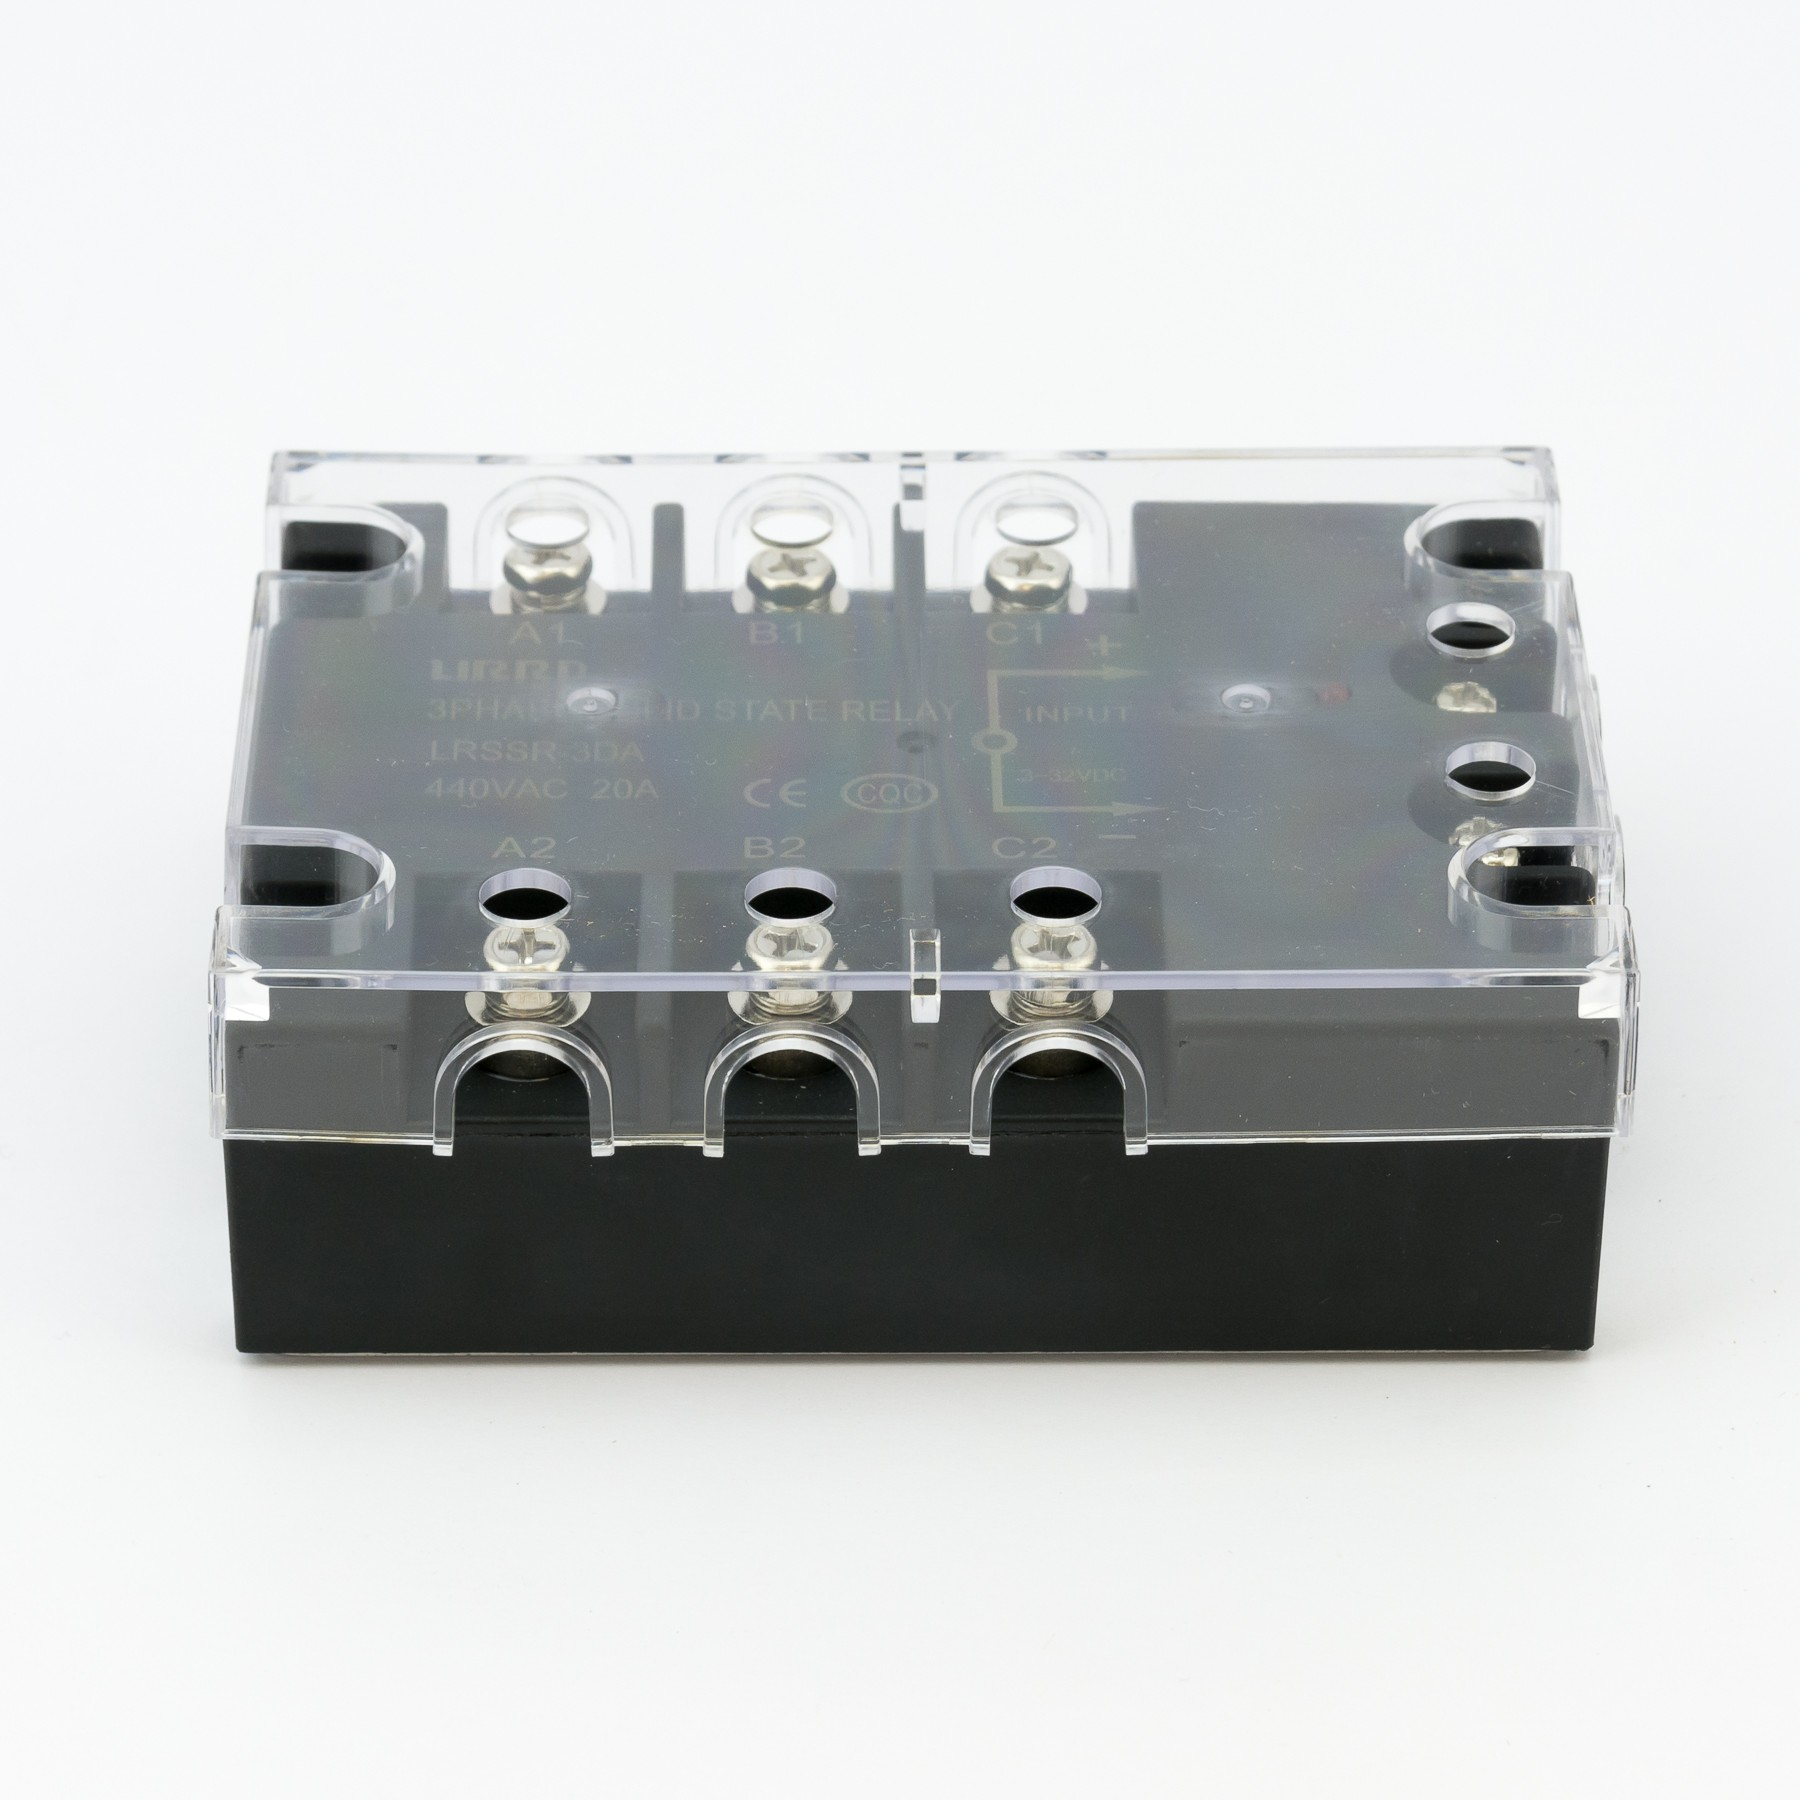 3-phase Solid State Relay (SSR), 30A